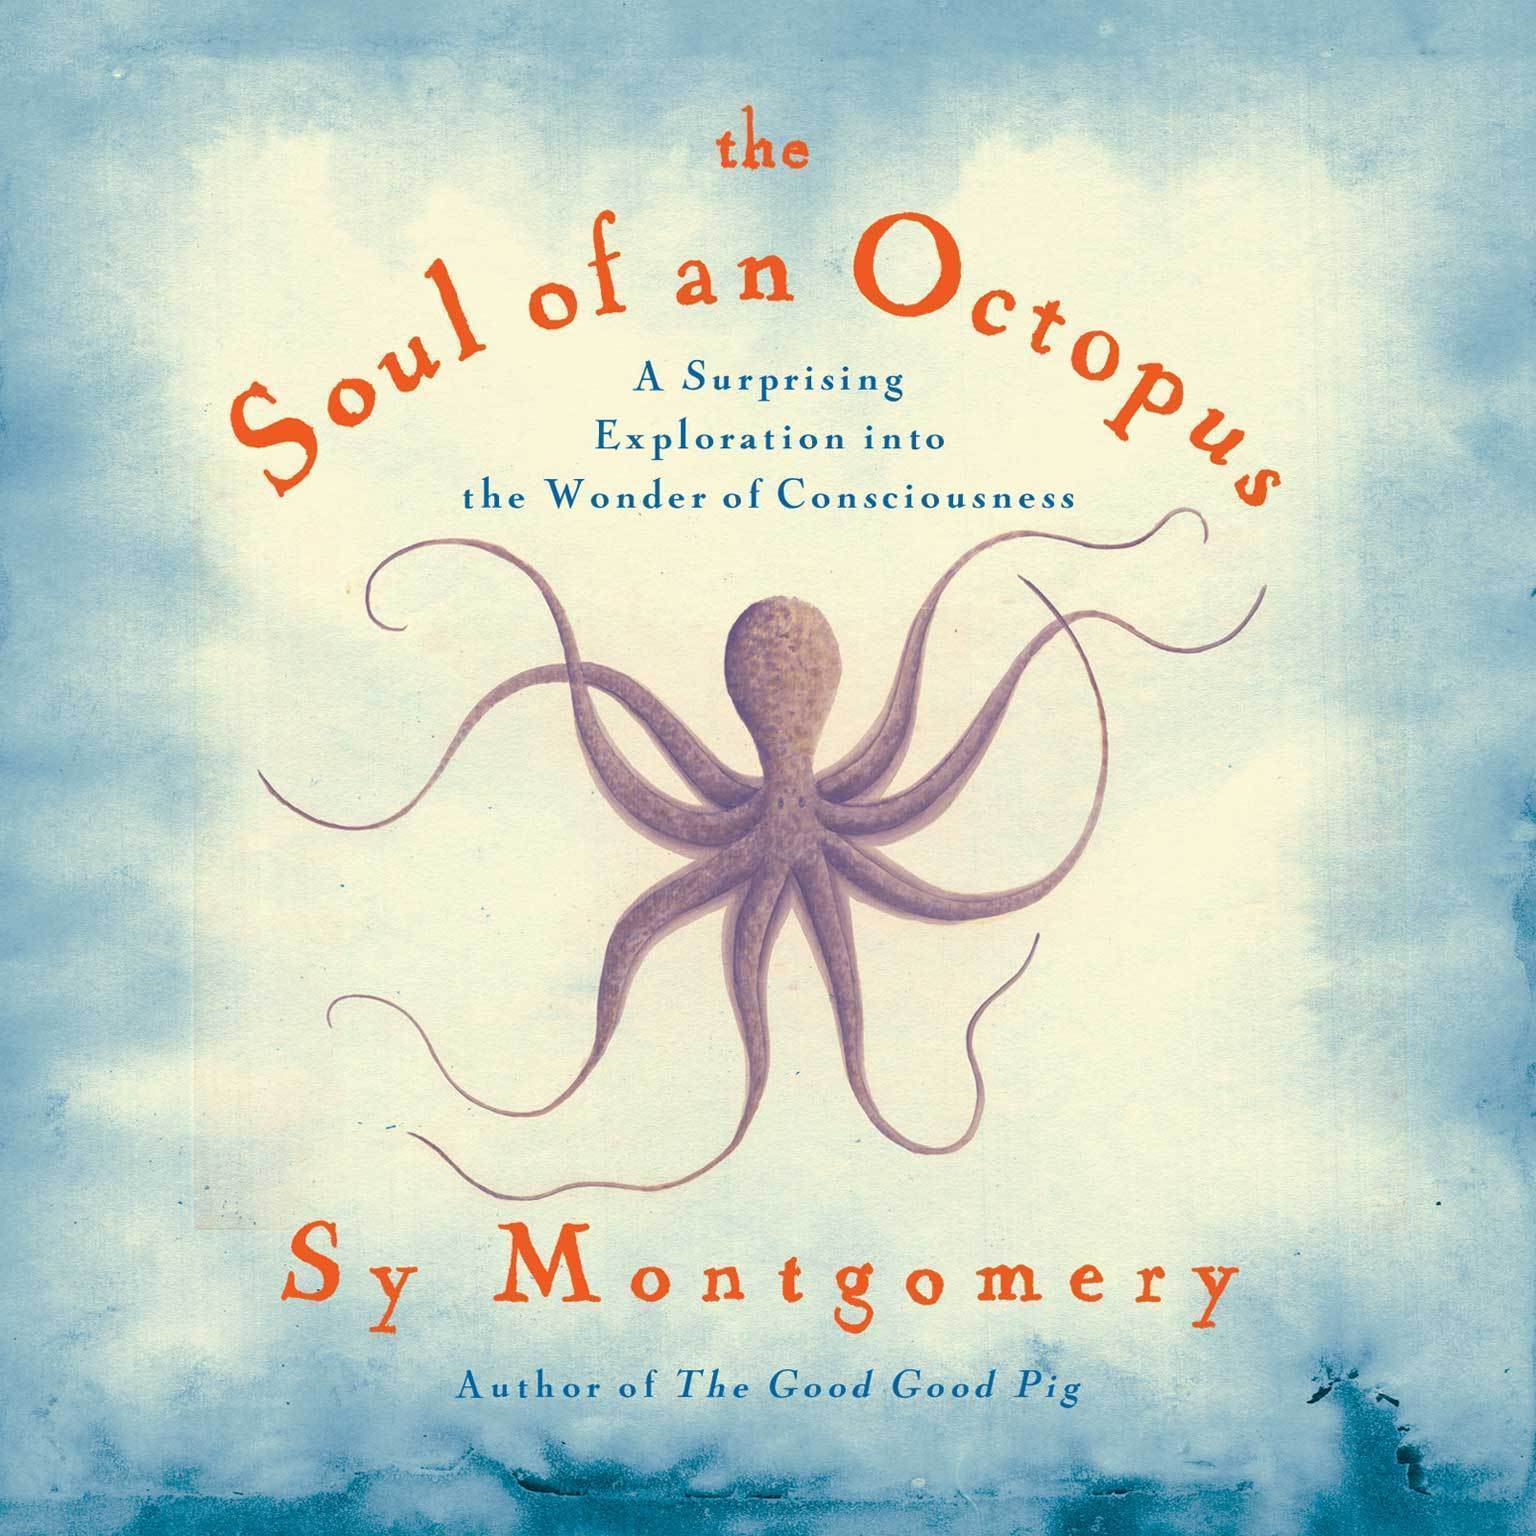 Printable The Soul of an Octopus: A Surprising Exploration into the Wonder of Consciousness Audiobook Cover Art